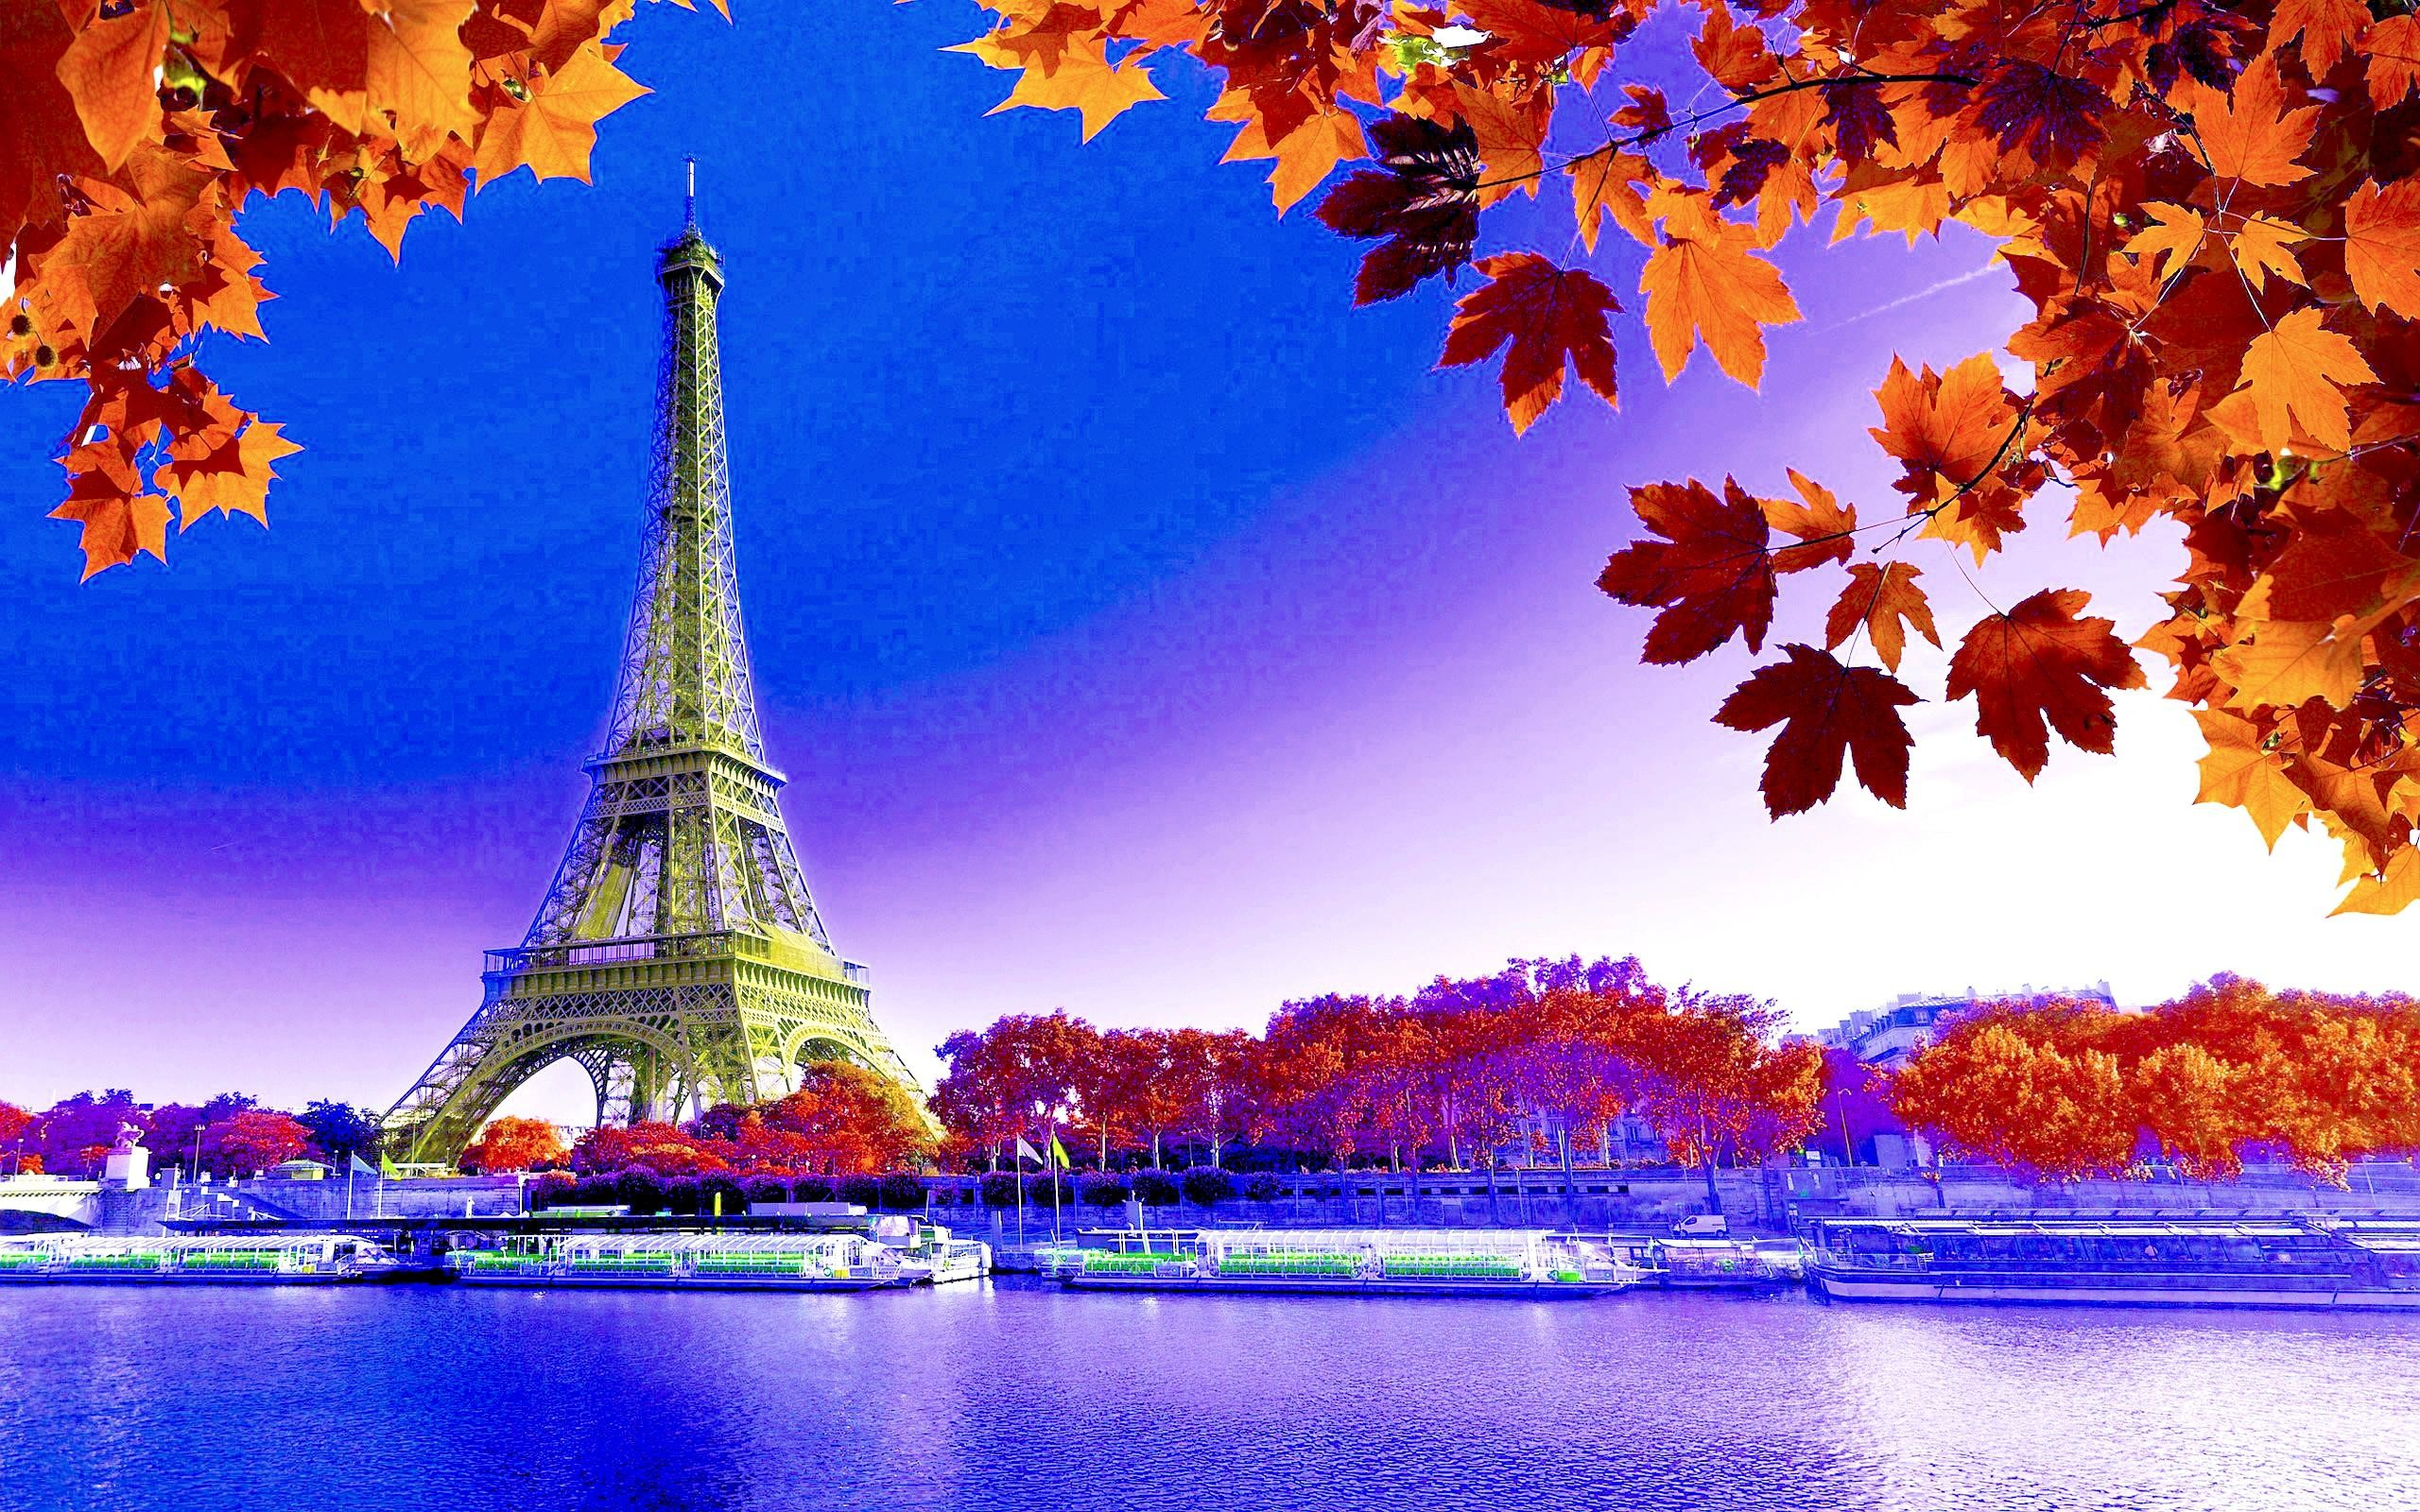 Wallpaper Eiffel Tower 75 Images